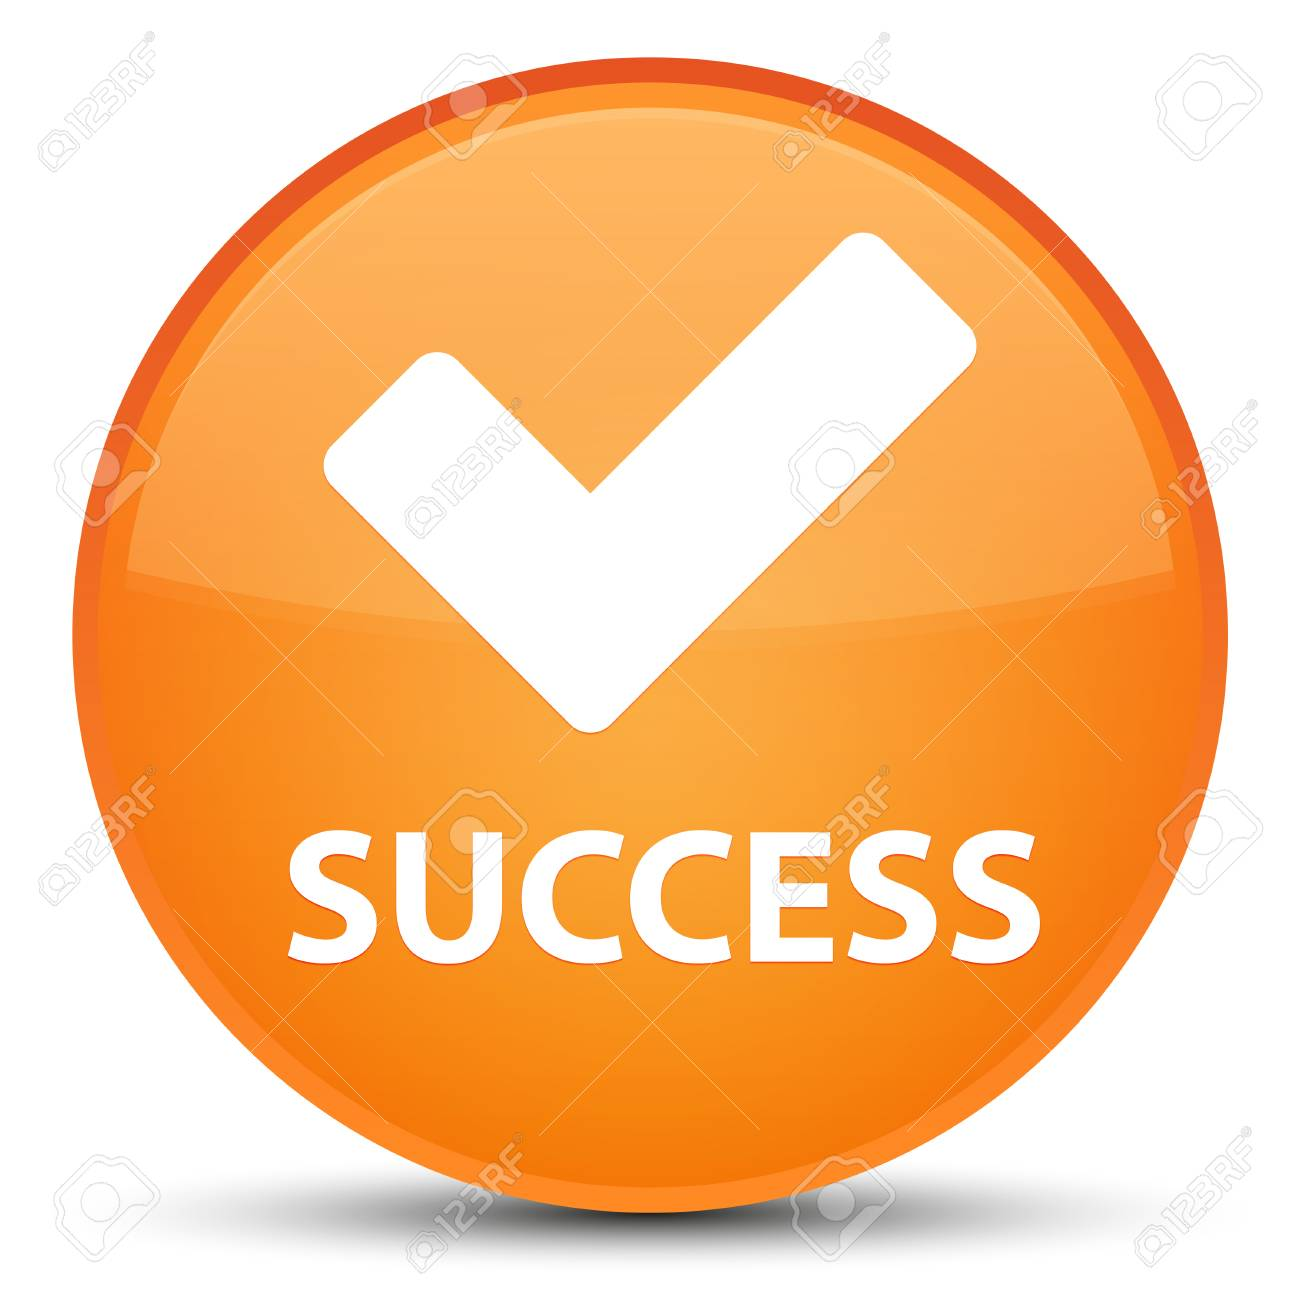 Success (validate icon) isolated on special orange round button abstract illustration - 89119037